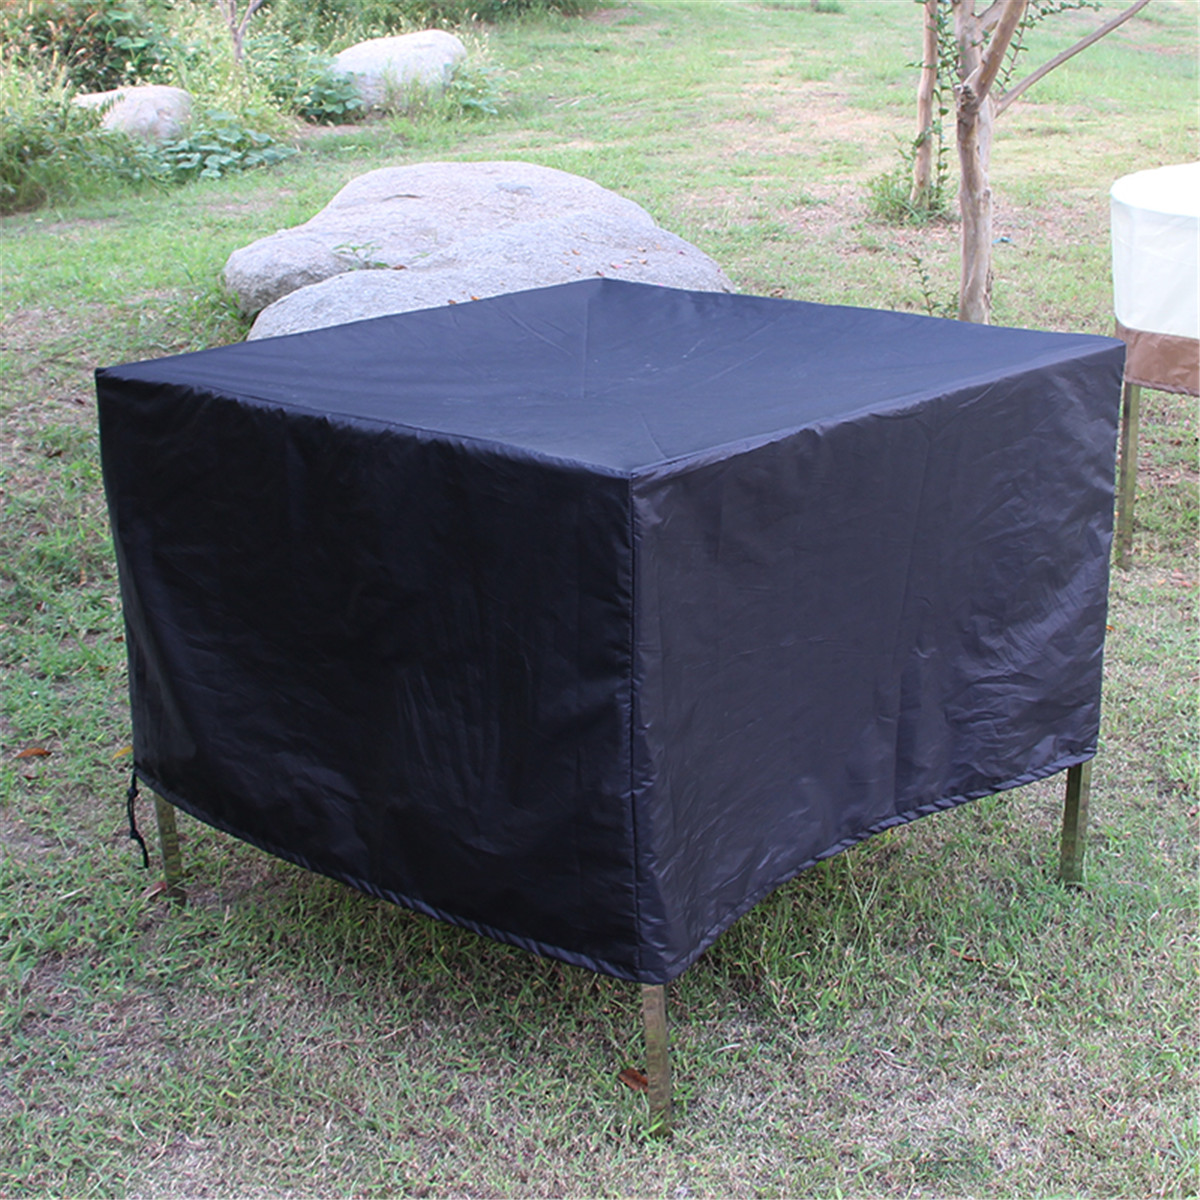 IPRee® 150x150x75cm Outdoor Garden Waterproof Rattan Cube Table Furniture Cover Shelter Protection